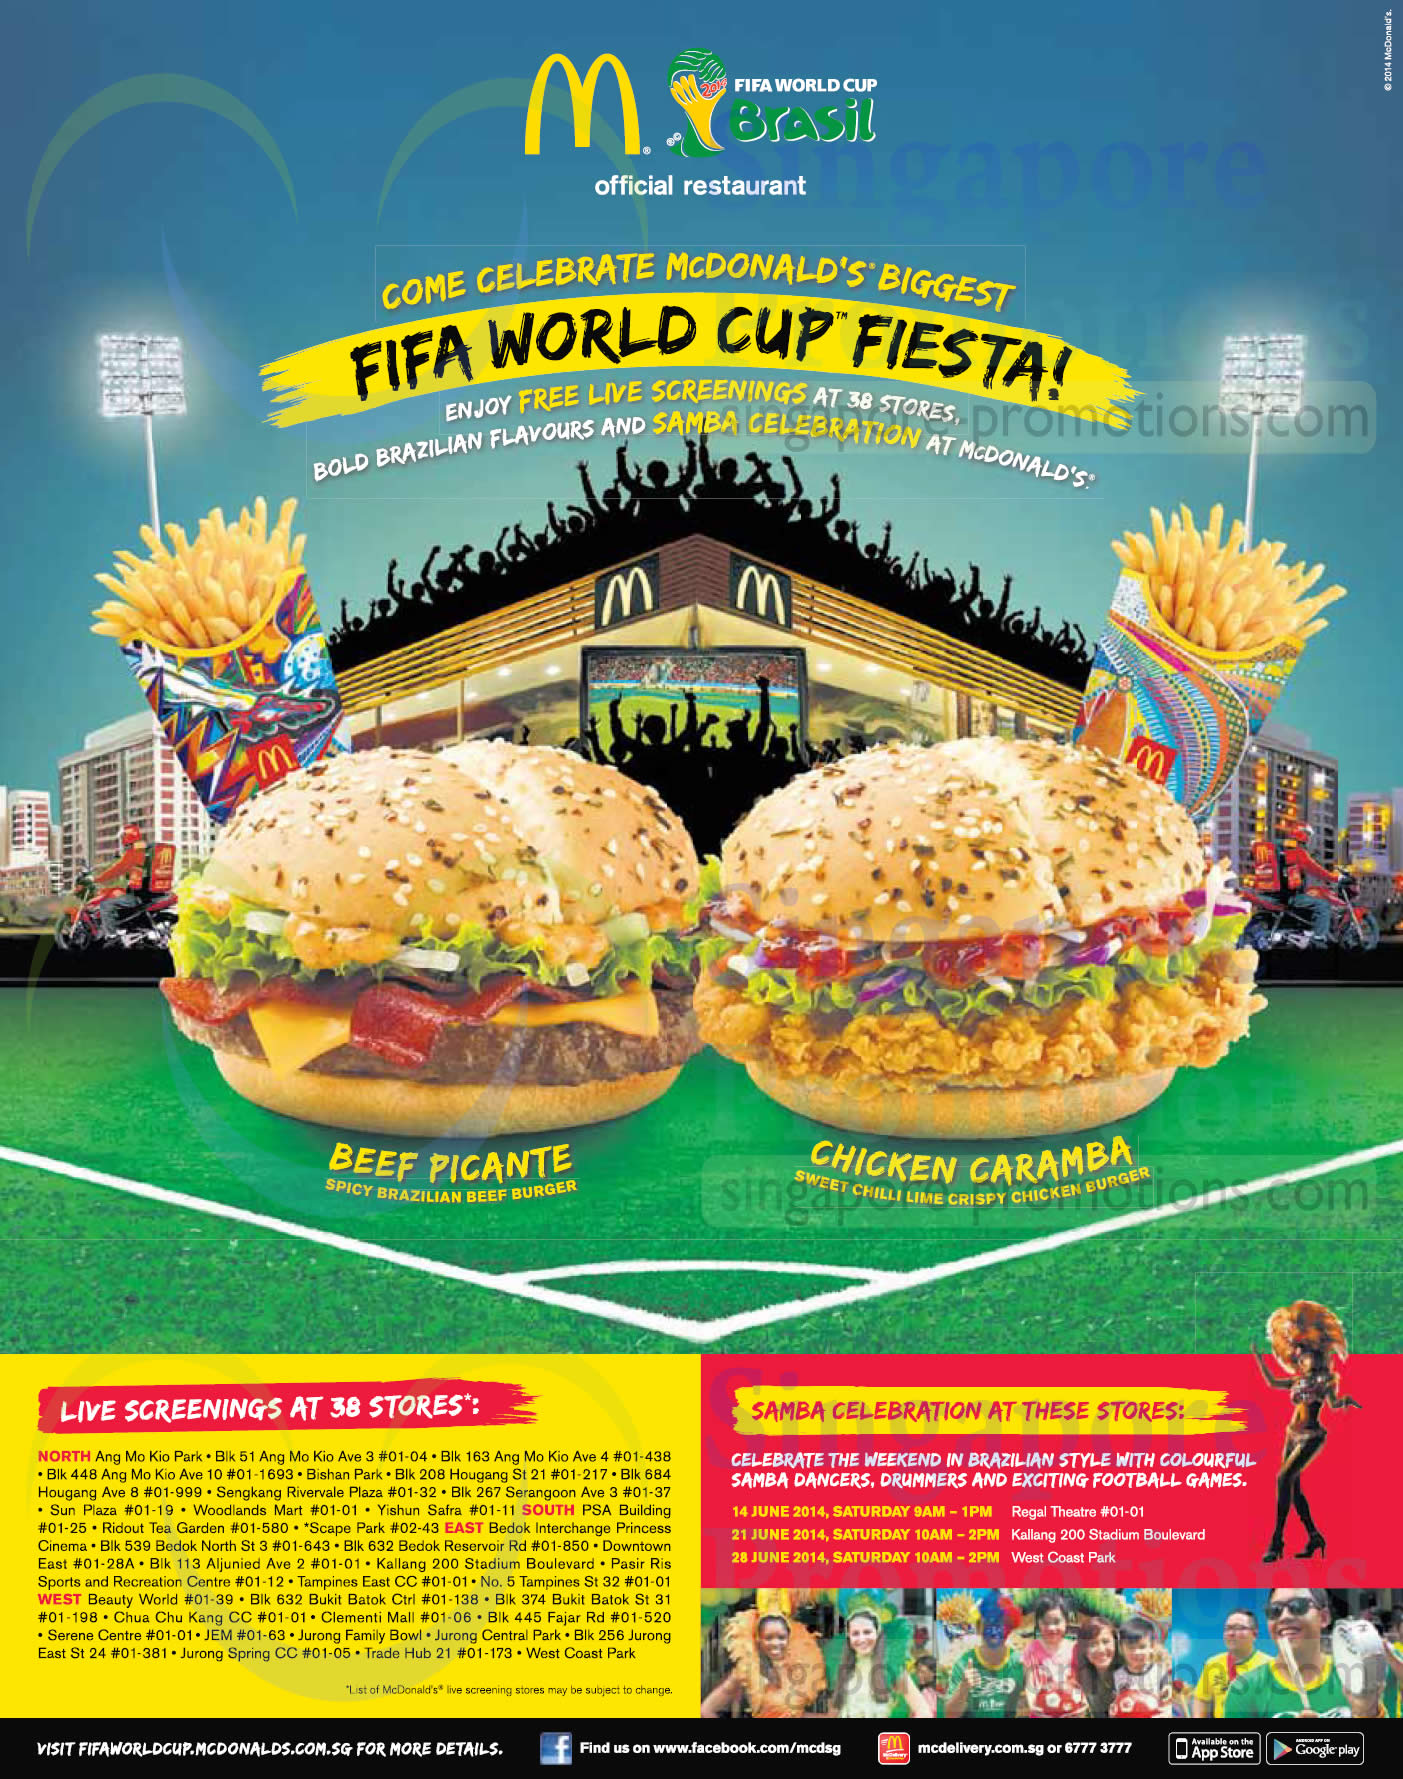 Furniture Designing Software Mcdonald S Free Fifa World Cup Screenings 38 Stores 13